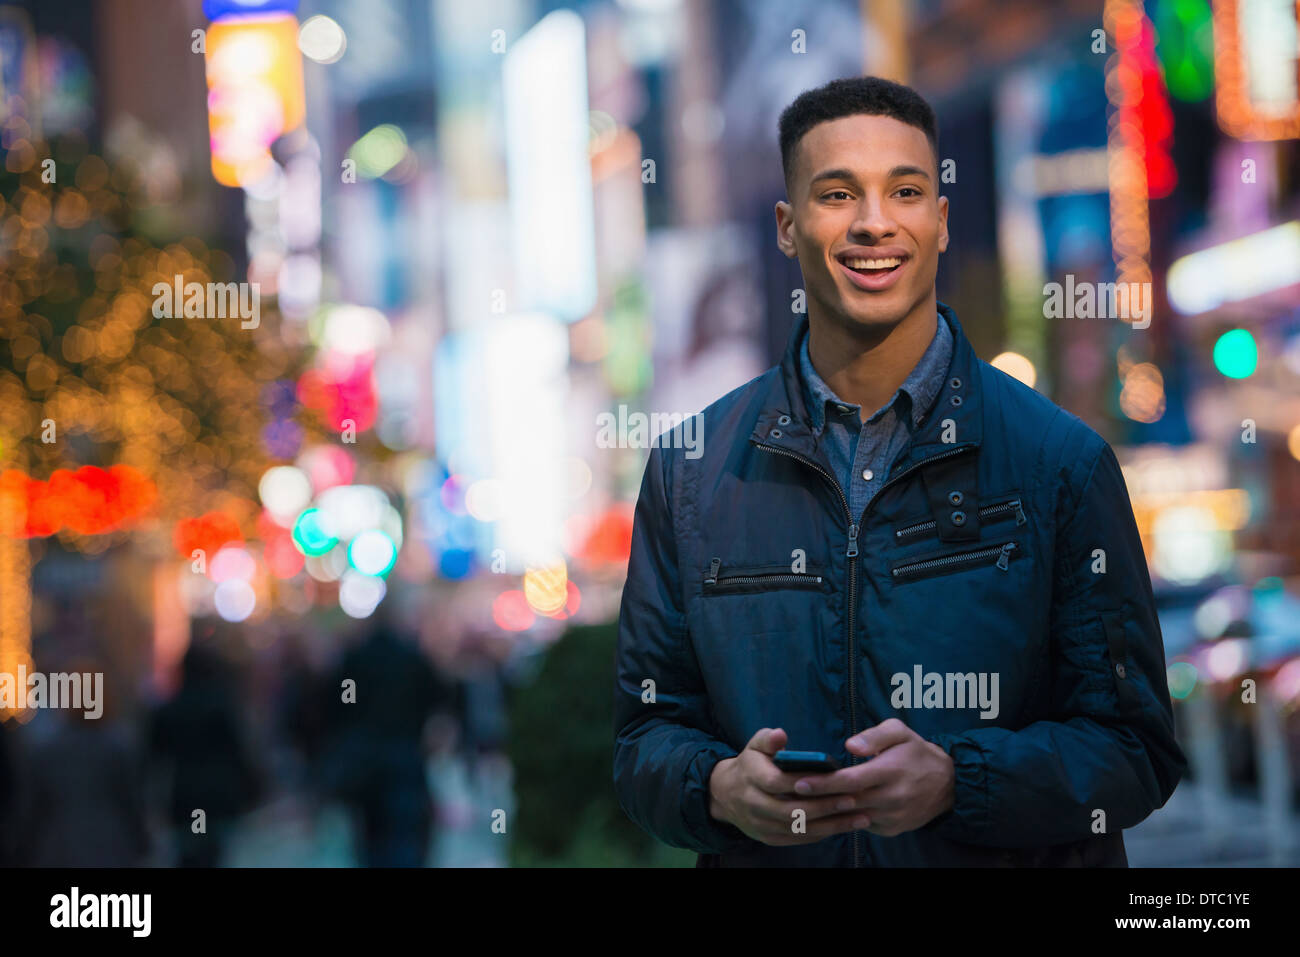 Young male tourist on busy street, New York City, USA - Stock Image